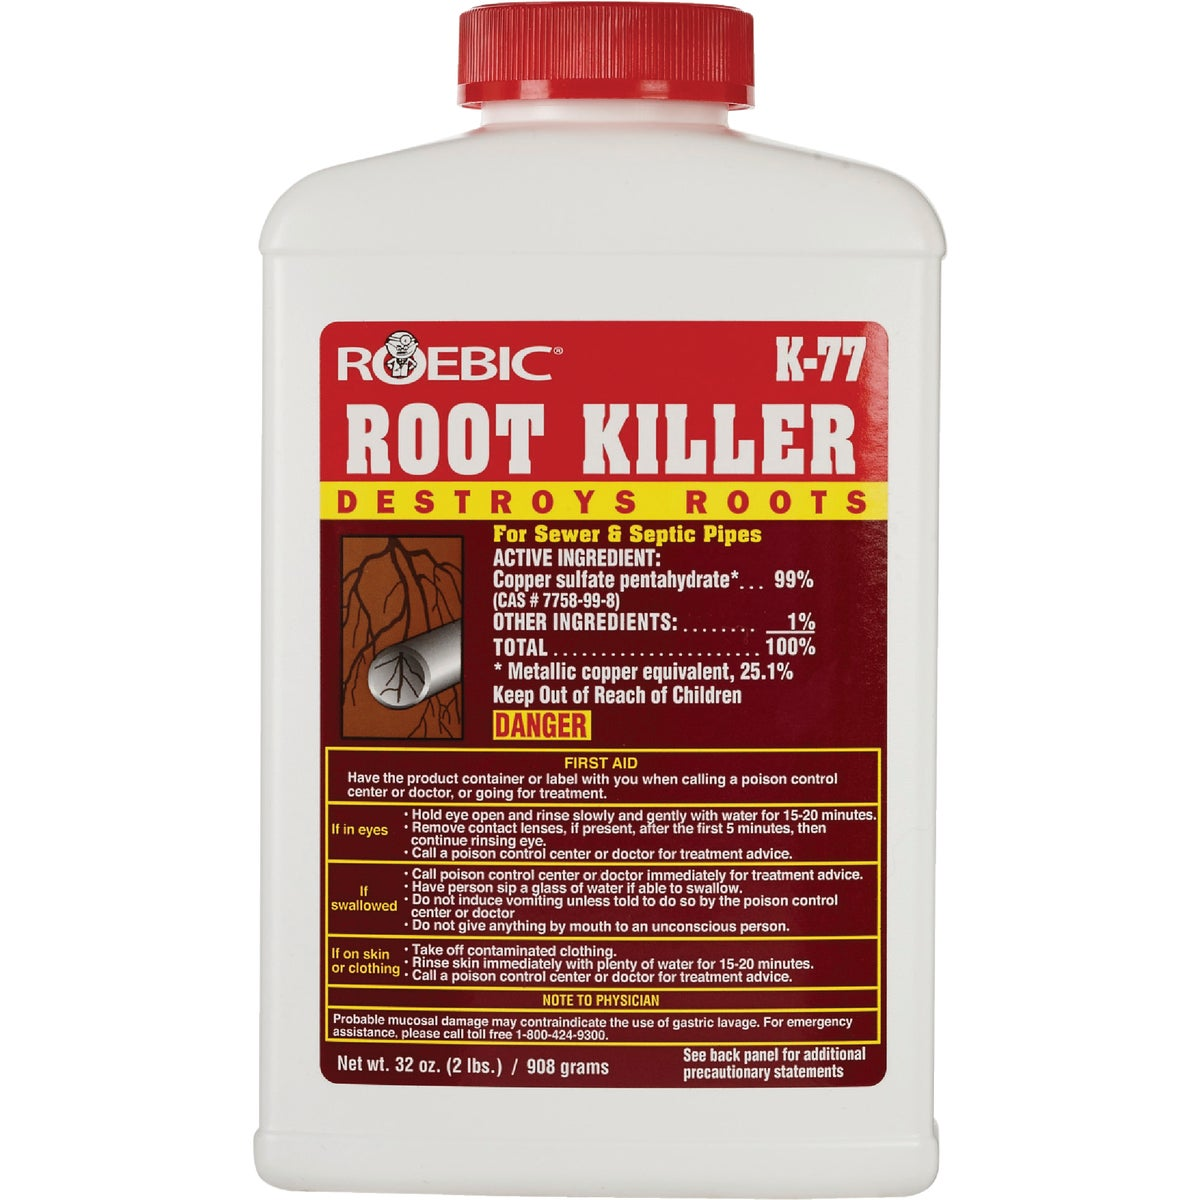 2LB ROOT KILLER - K77 by Roebic Laboratories